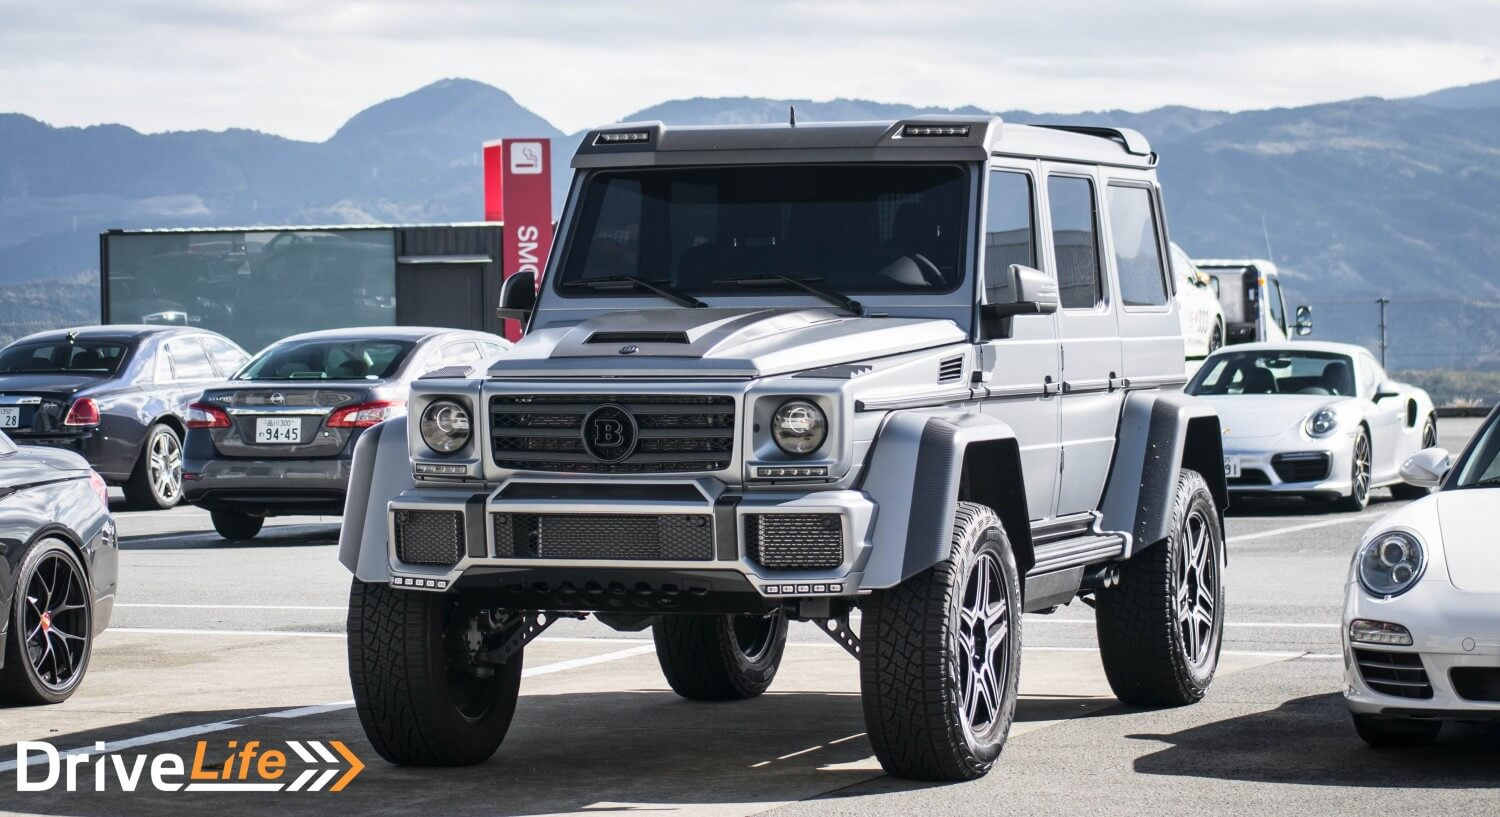 pagani-touge-drive-japan-fuji-mercedes-benz-g500-4x4